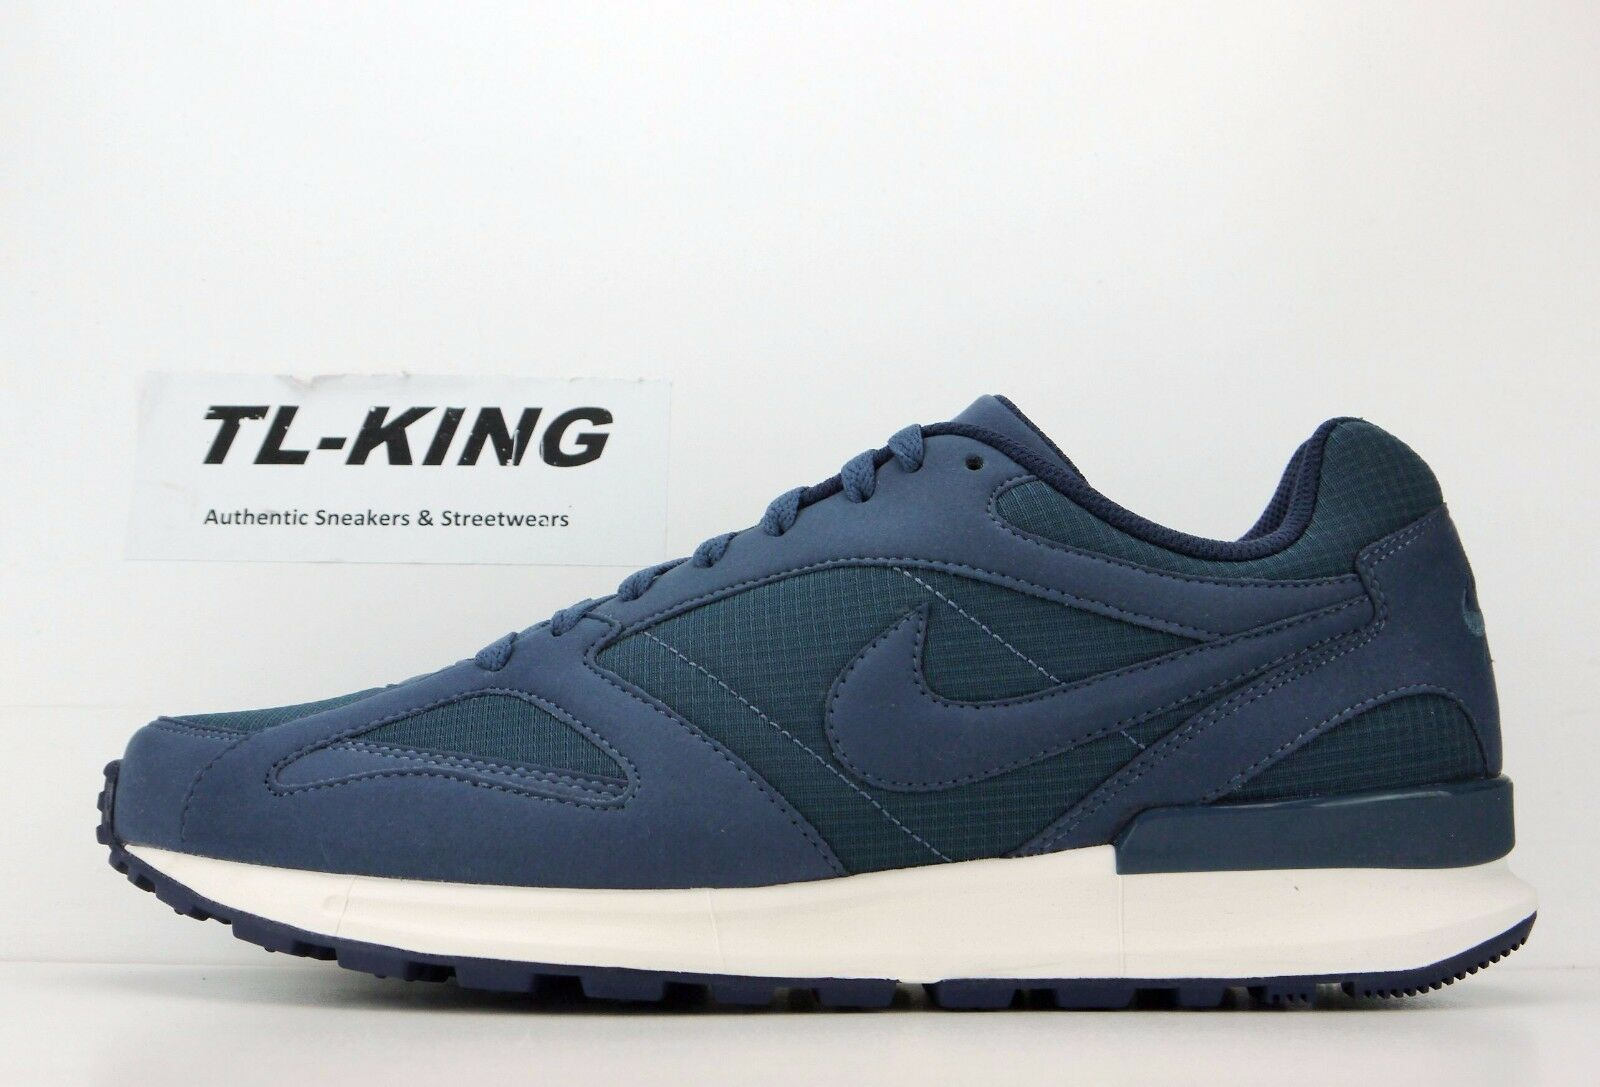 Nike Air Pegasus New Racer Squadron Blue Midnight Navy 705172 414 Msrp Price reduction New shoes for men and women, limited time discount